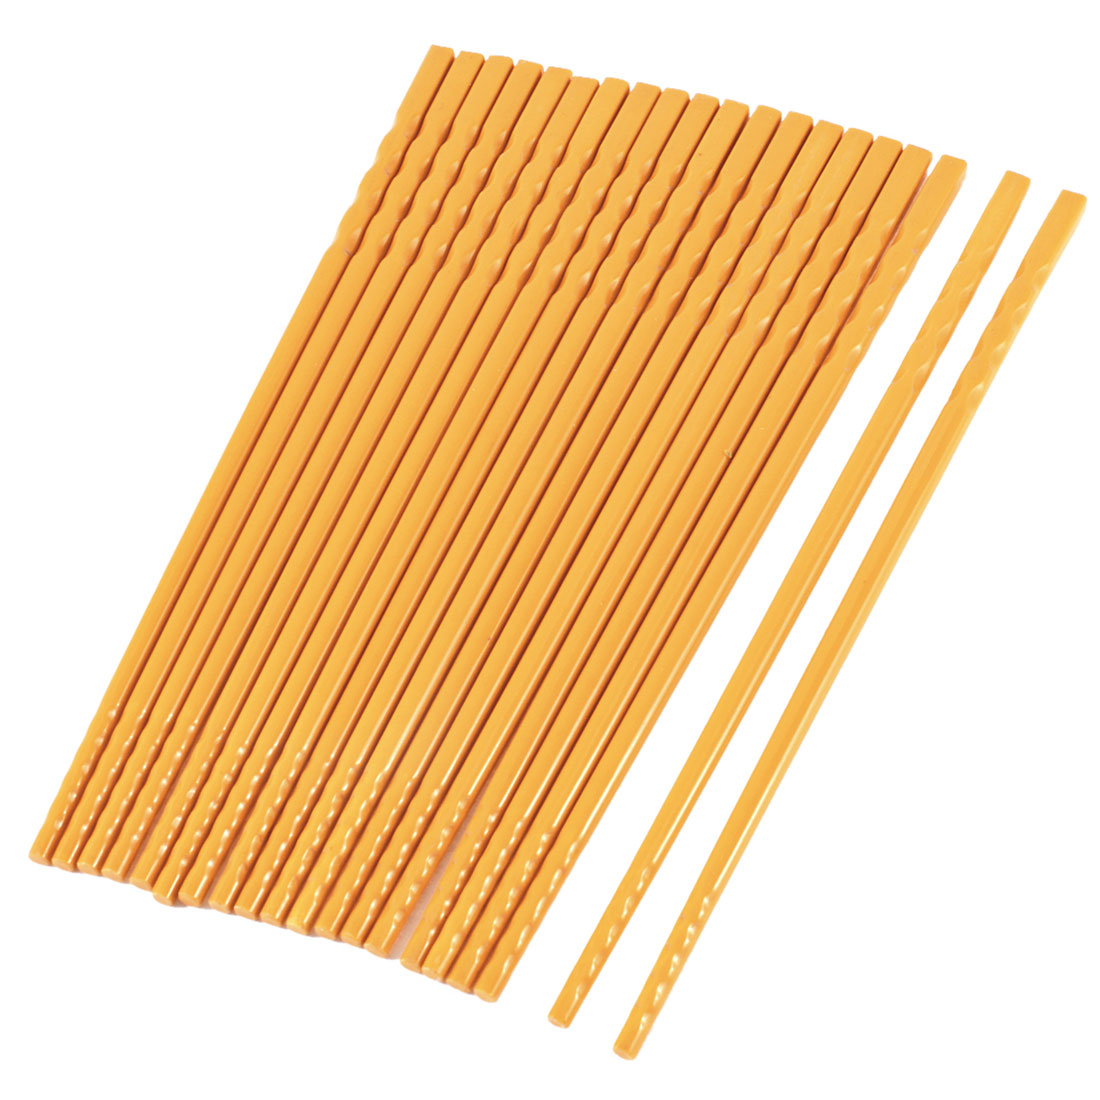 "10 Pairs Yellow Home Tableware Non-slip Plastic Chopsticks 8.9"" Long"